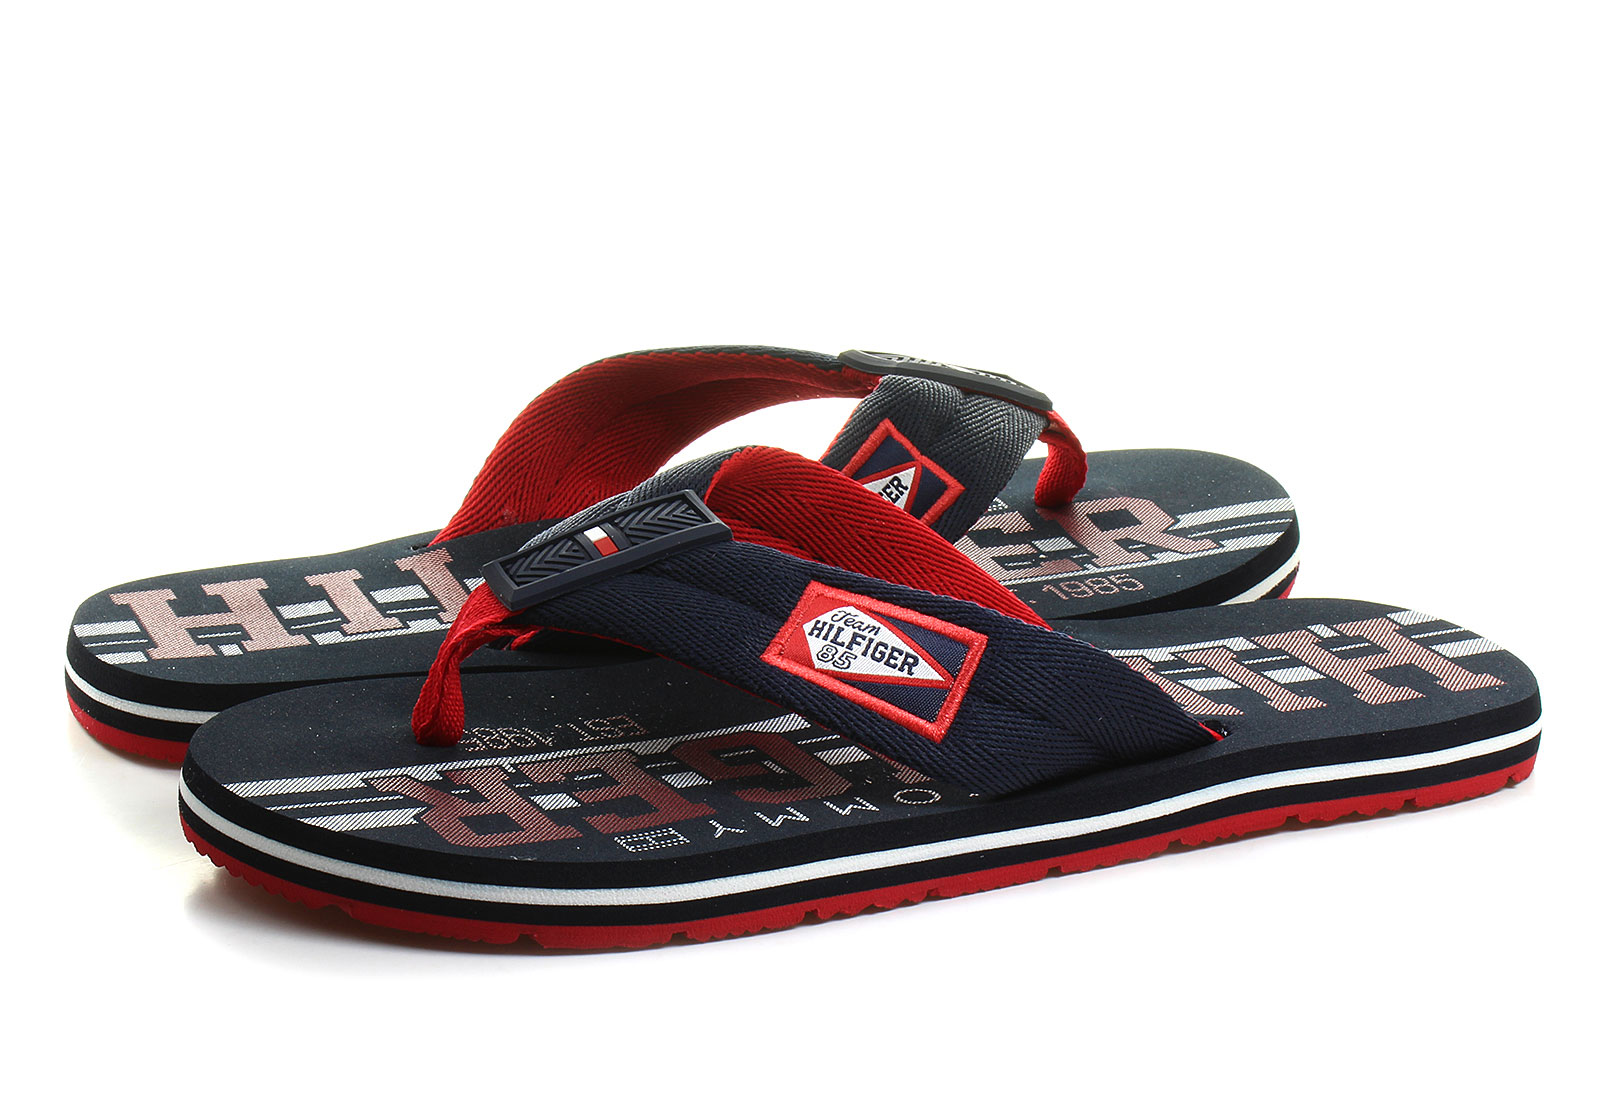 tommy hilfiger slippers buddy 10d 16s 0938 403. Black Bedroom Furniture Sets. Home Design Ideas